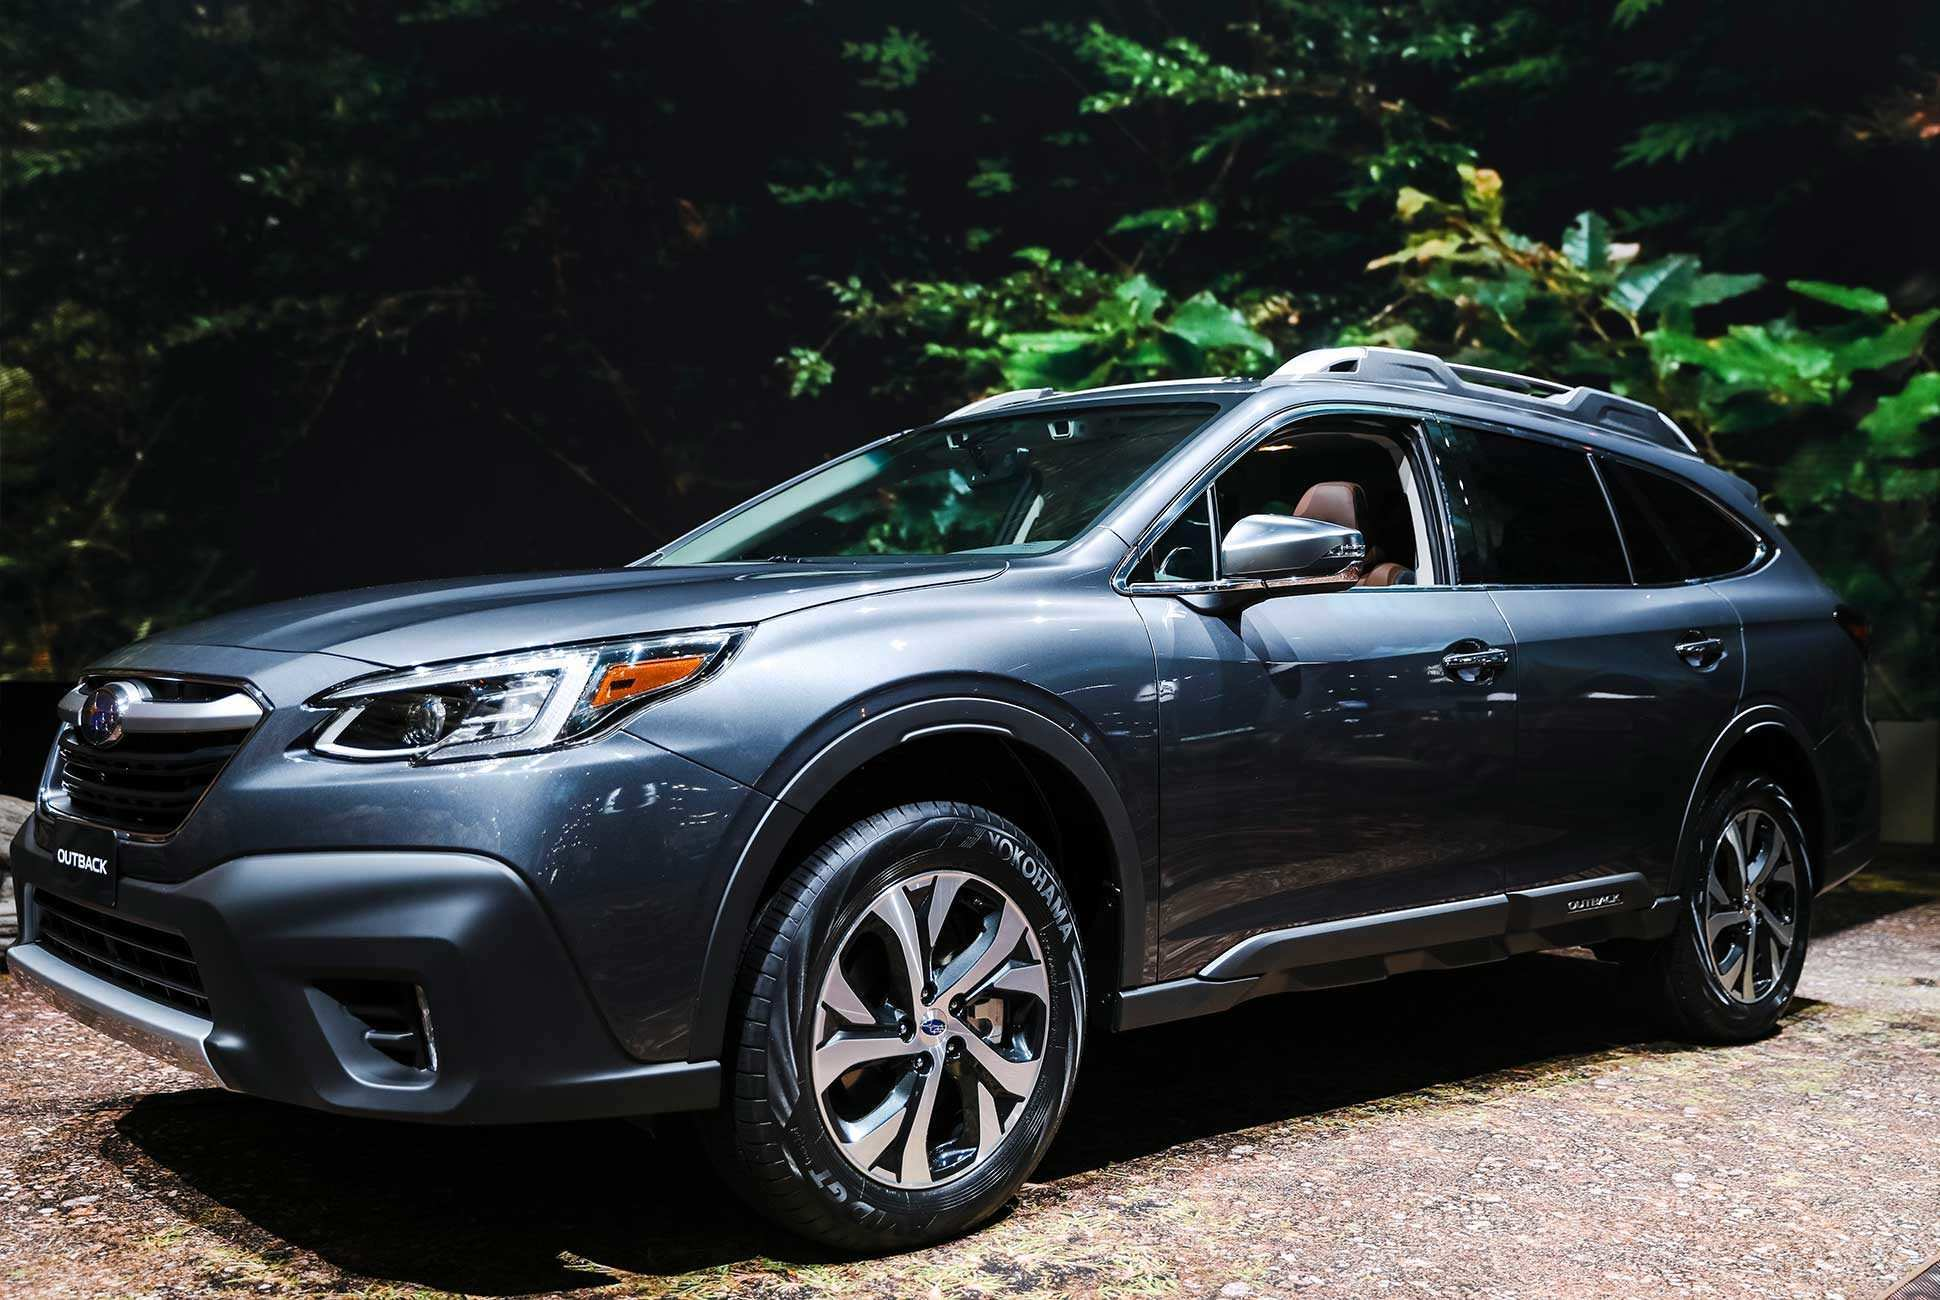 63 The All New Subaru Outback 2020 Speed Test